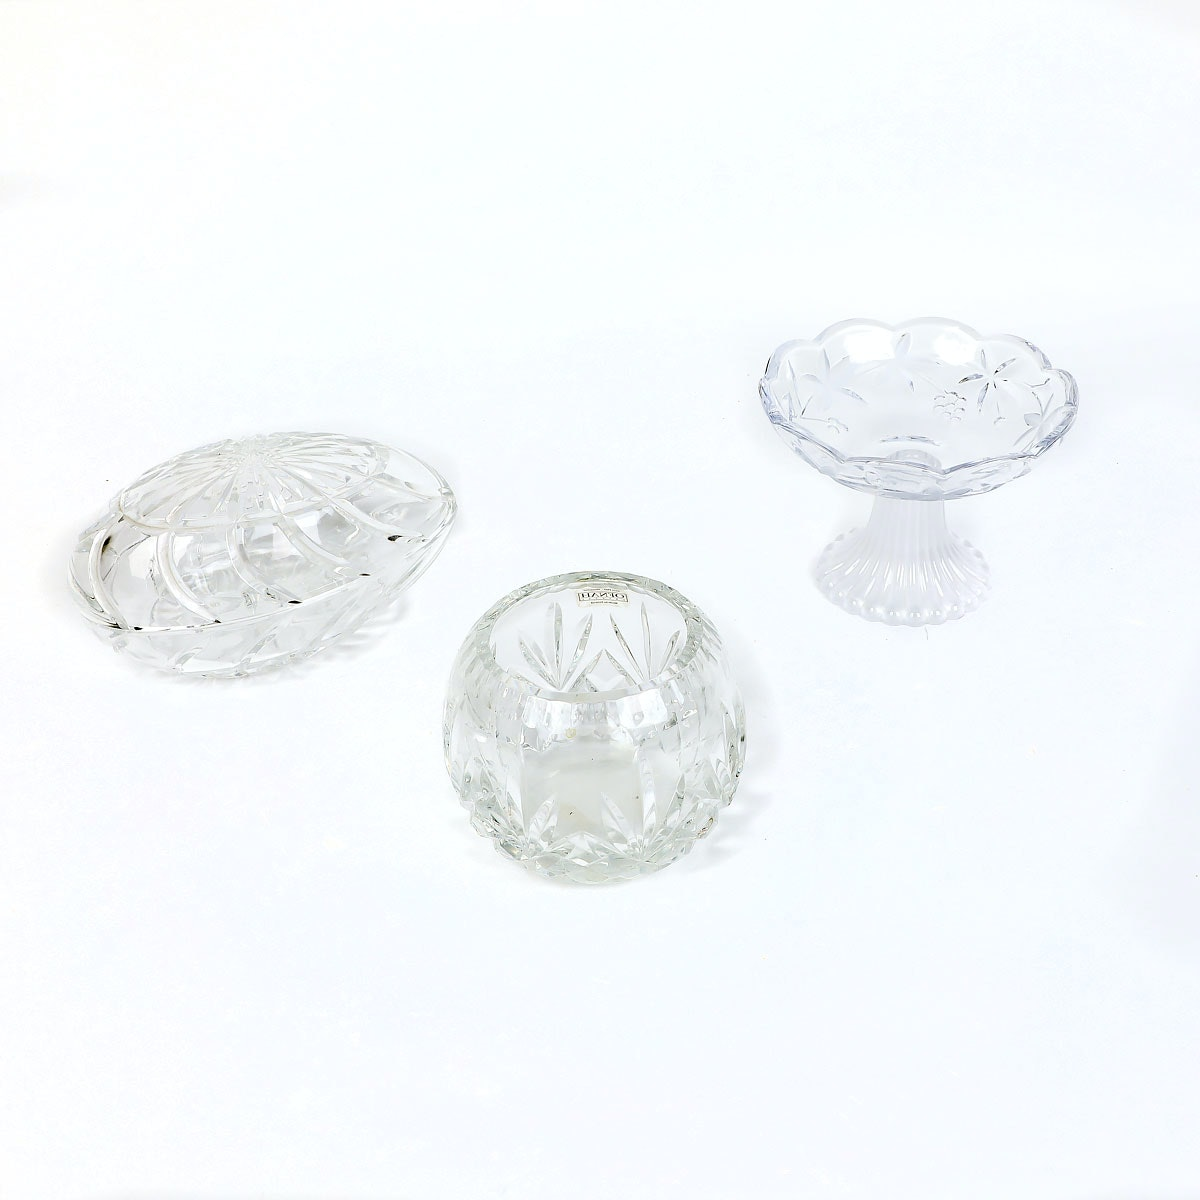 Trio of Decorative Crystal Pieces